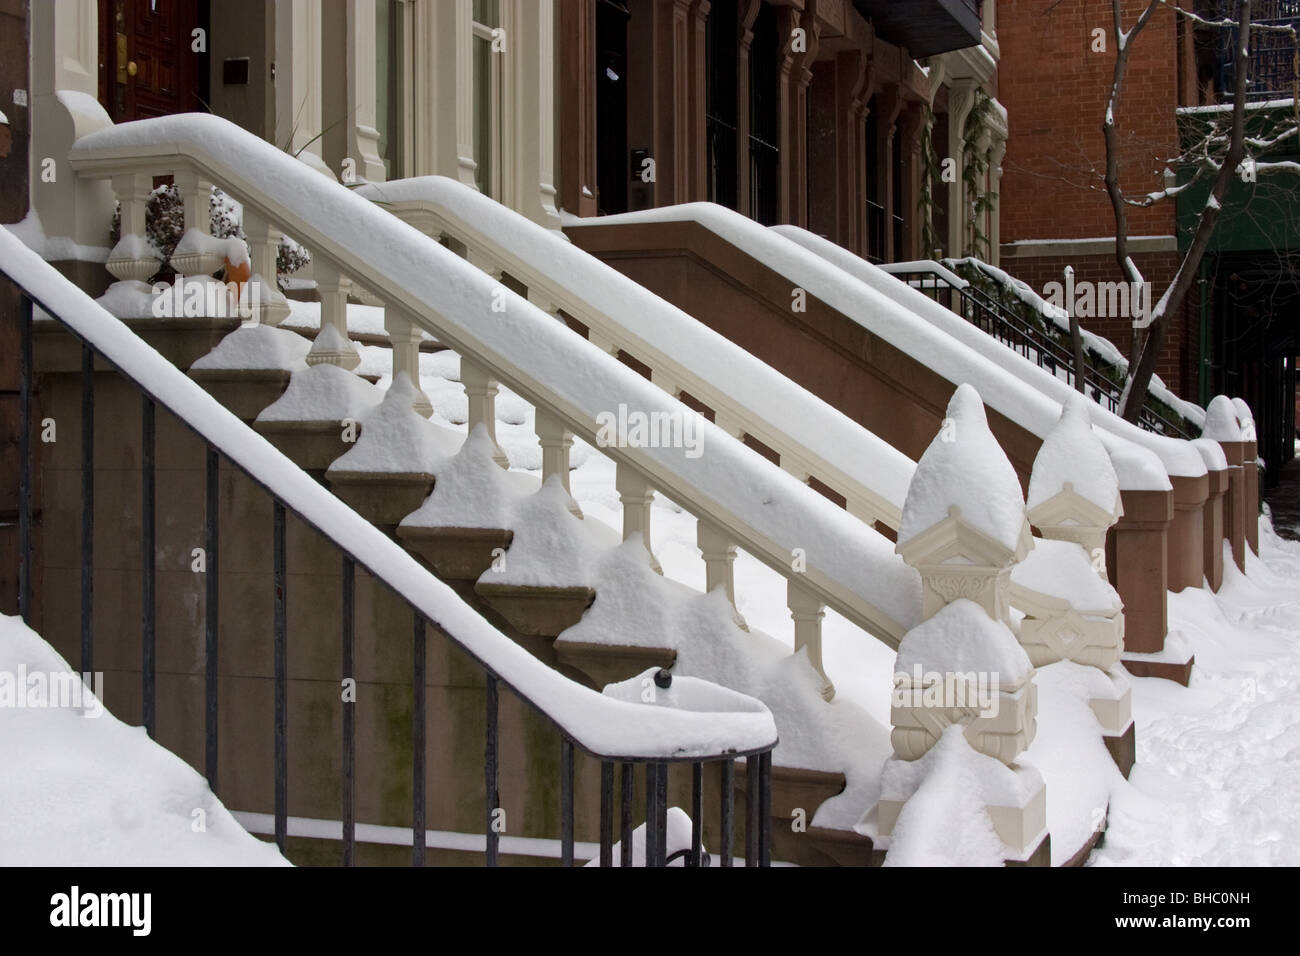 Snow covered stairways in Upper West - Stock Image